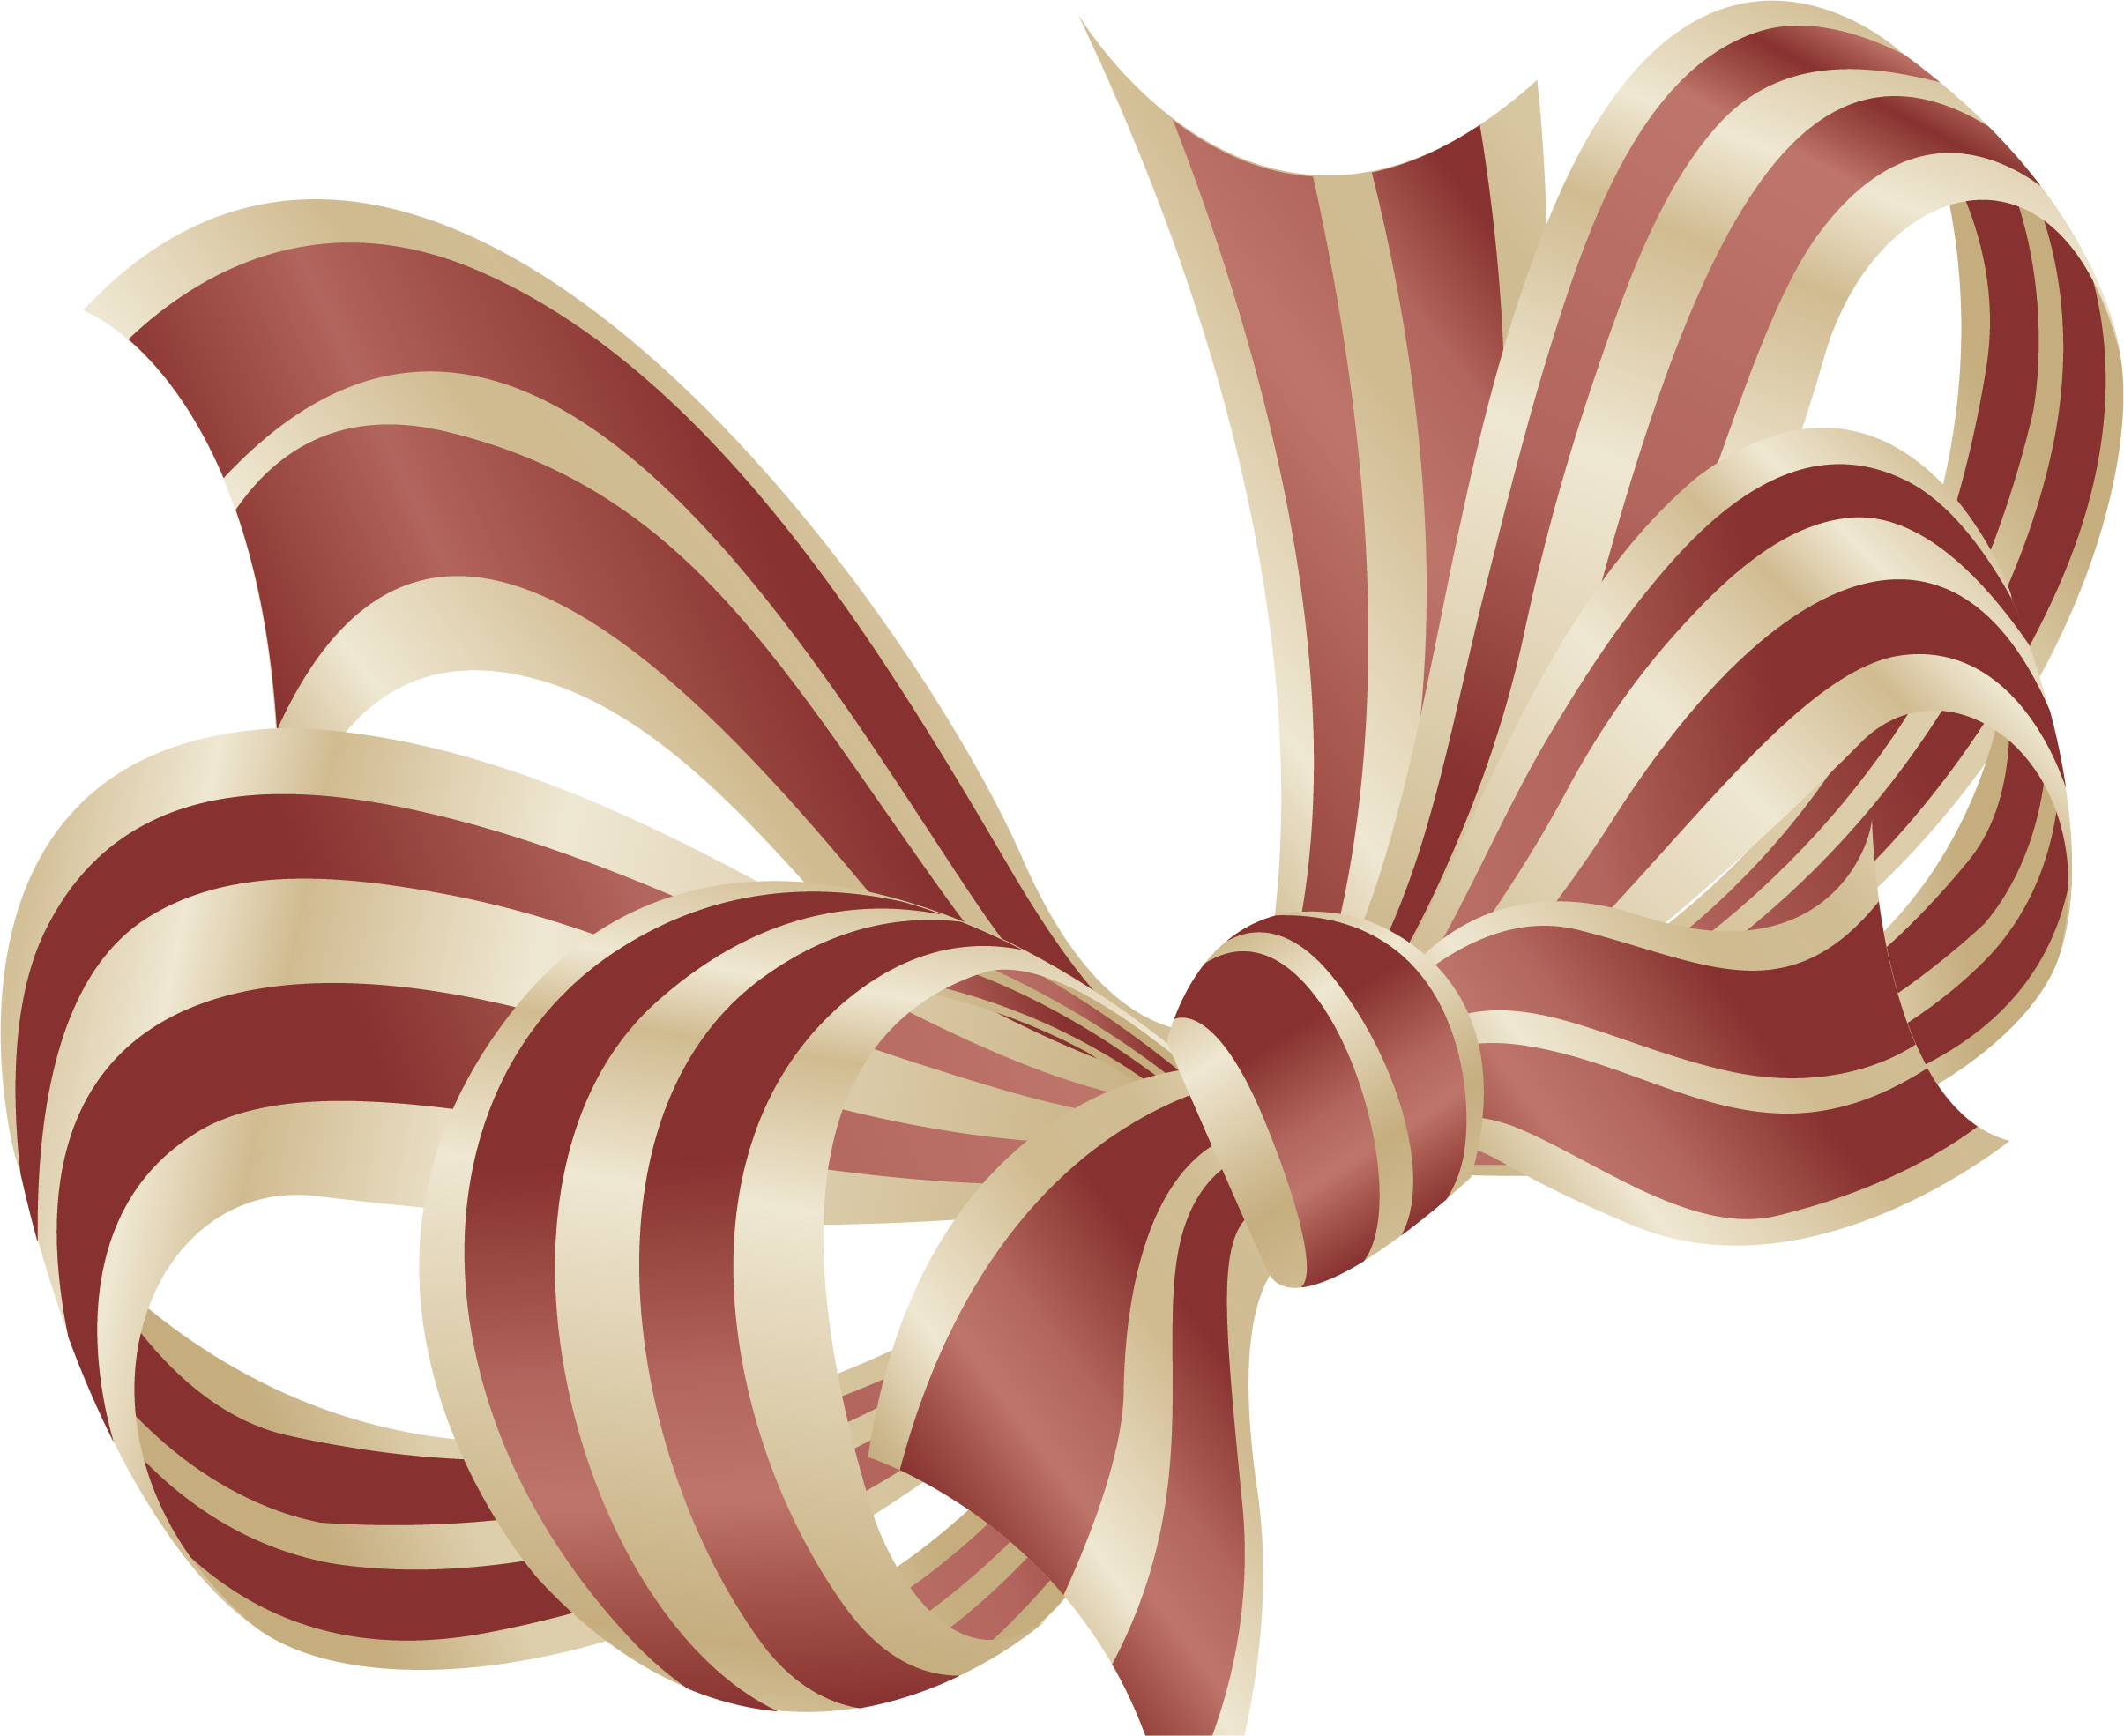 jpg free Ribbon icon png transprent. Underwater vector element.